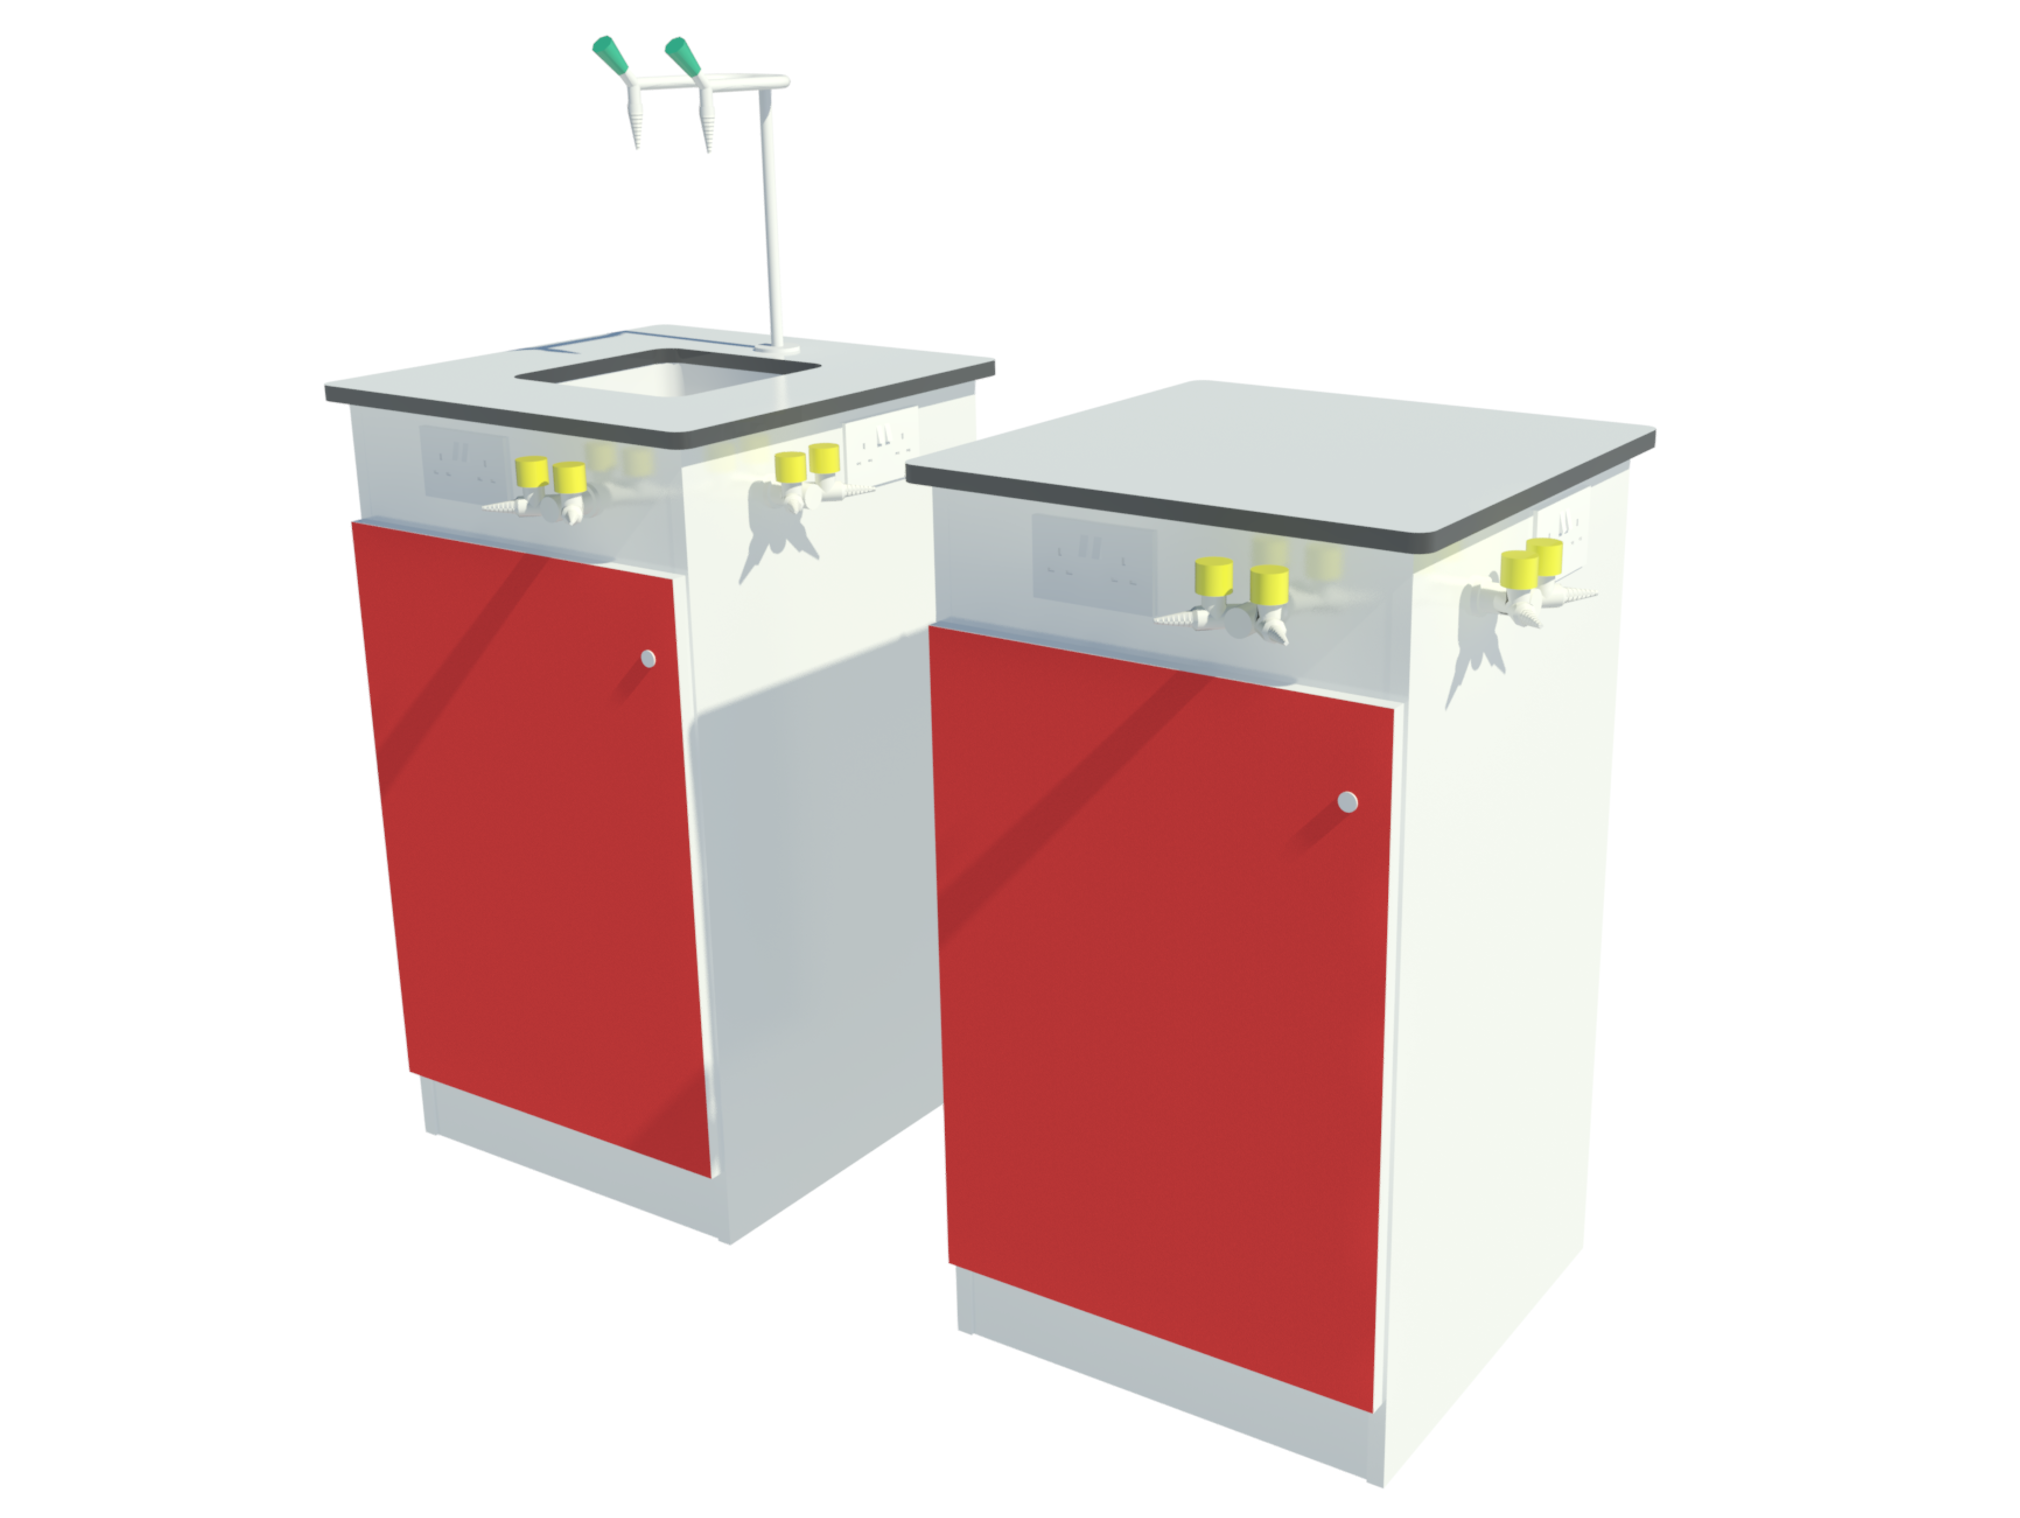 3D rendering showing service bollards with and without sink.